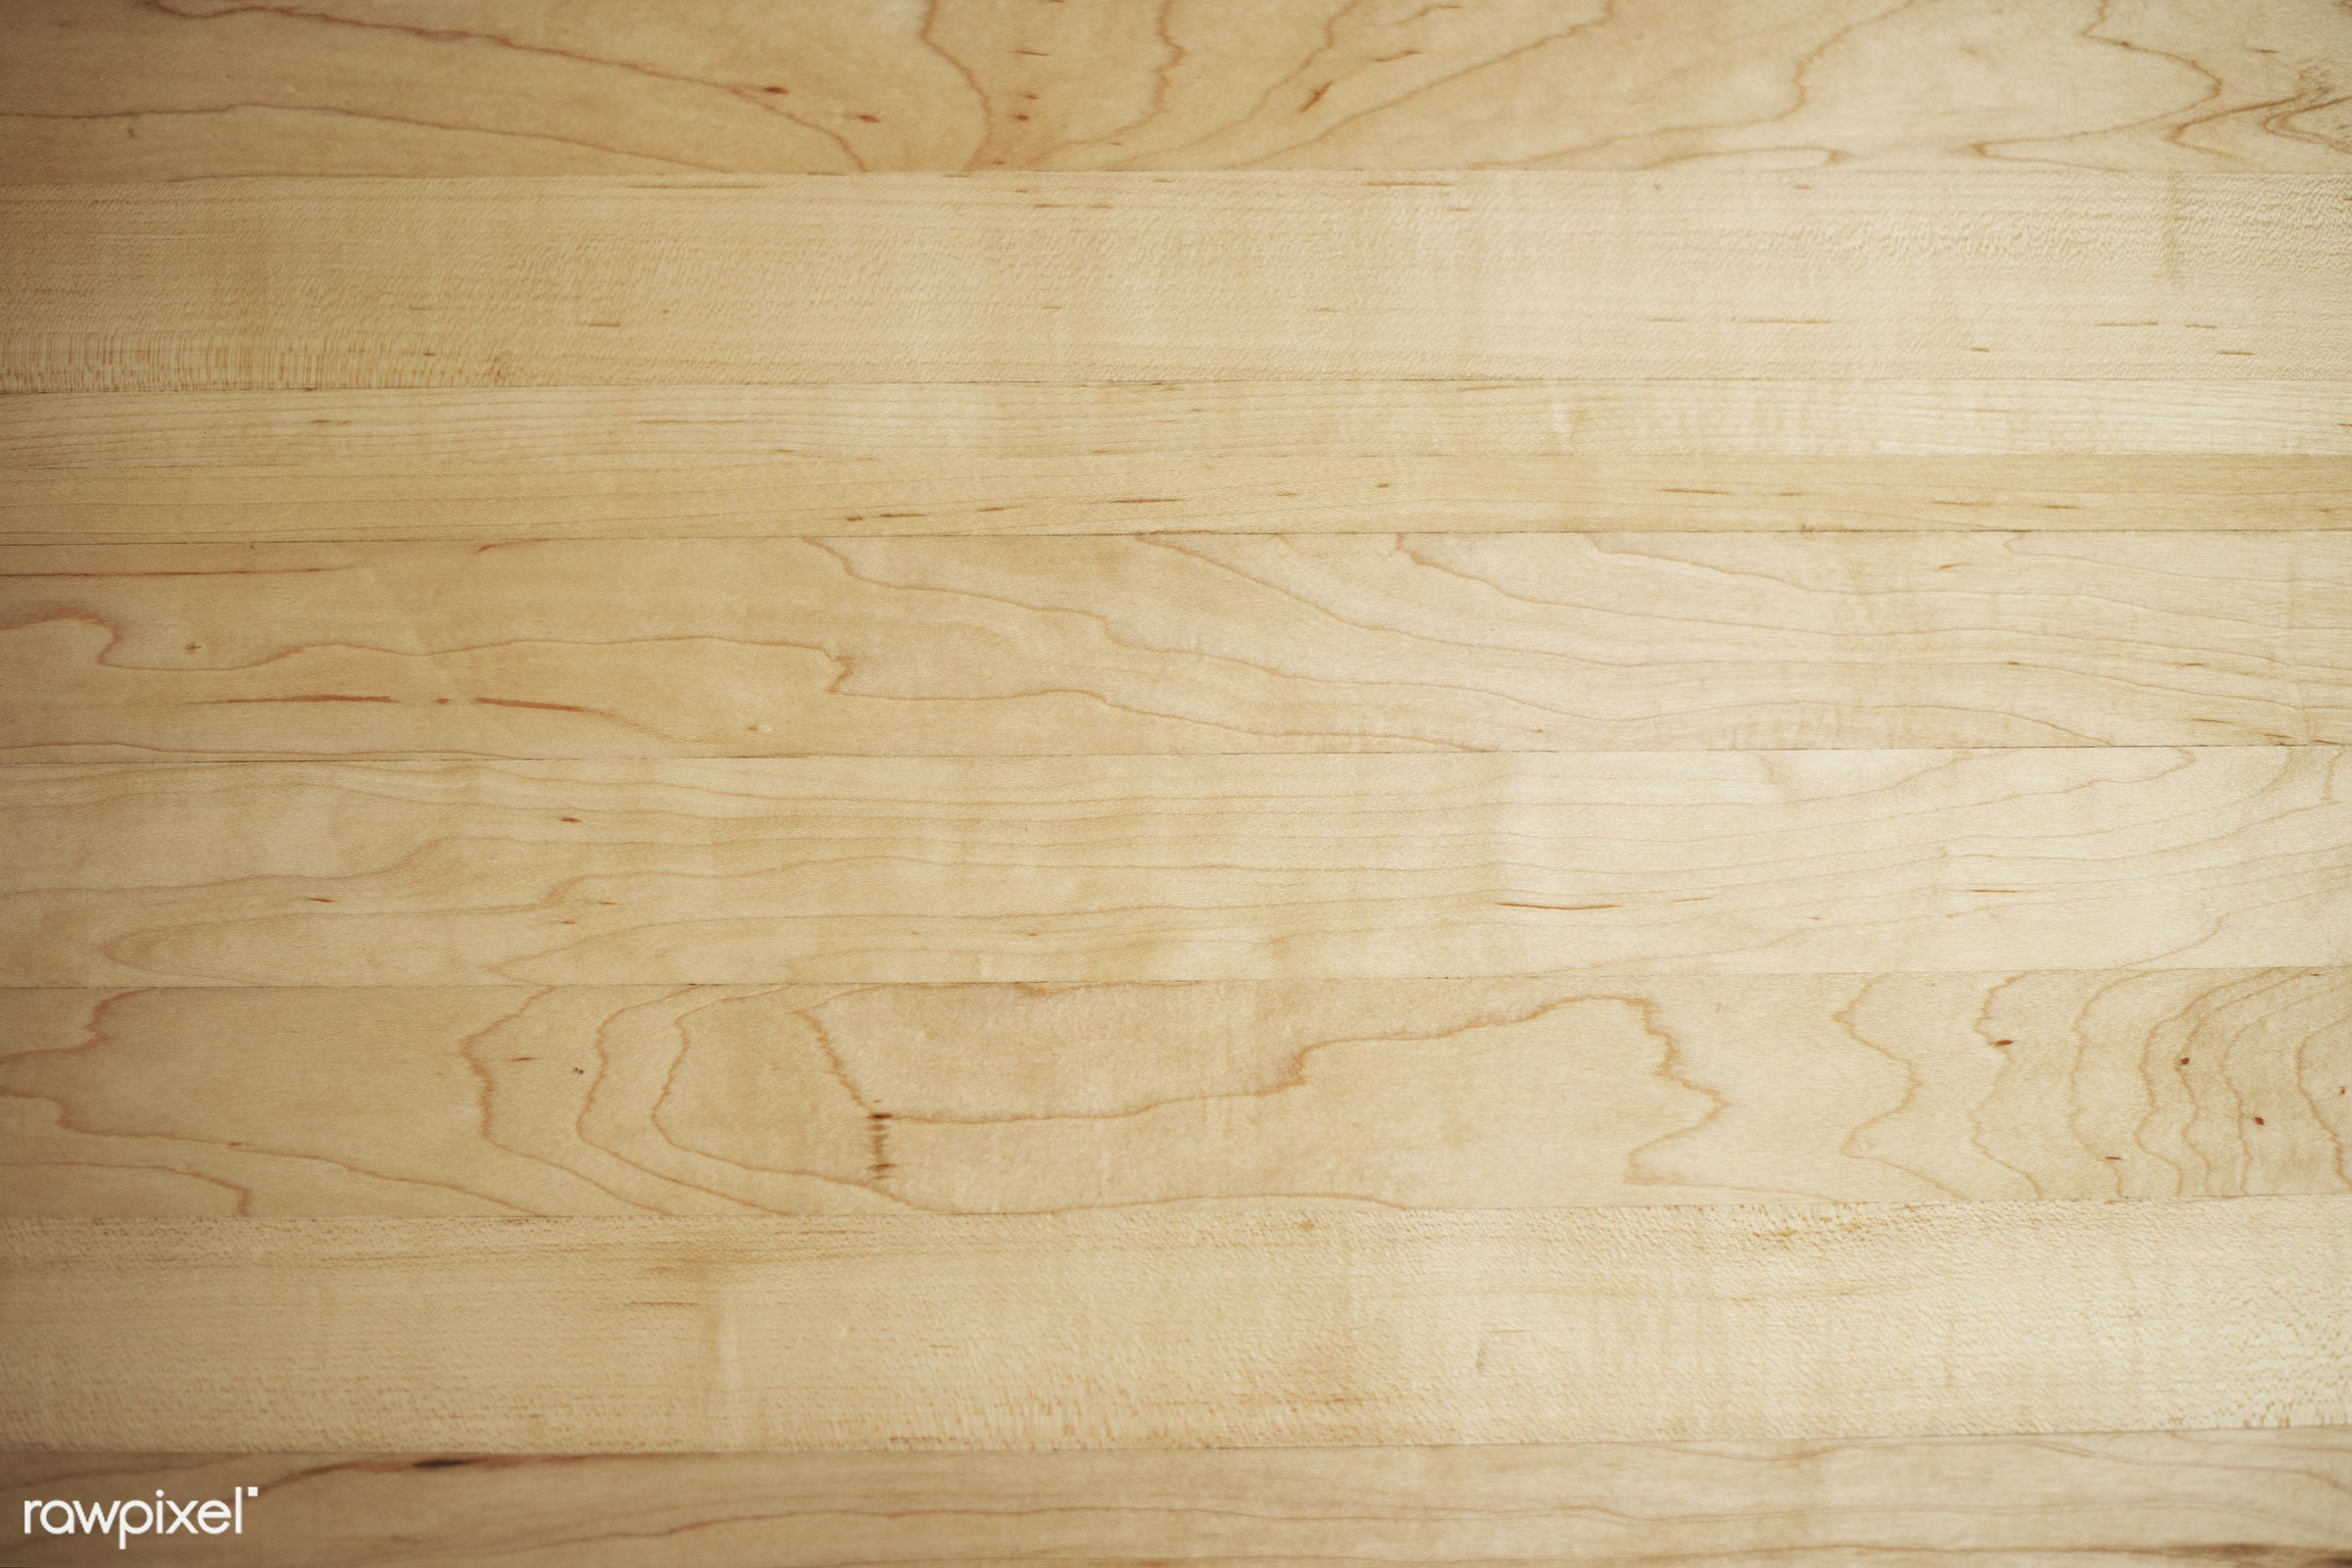 Texture of a wooden cutting board - background, banner, blank, board, brown, cc0, closeup, copyspace, creative common 0,...